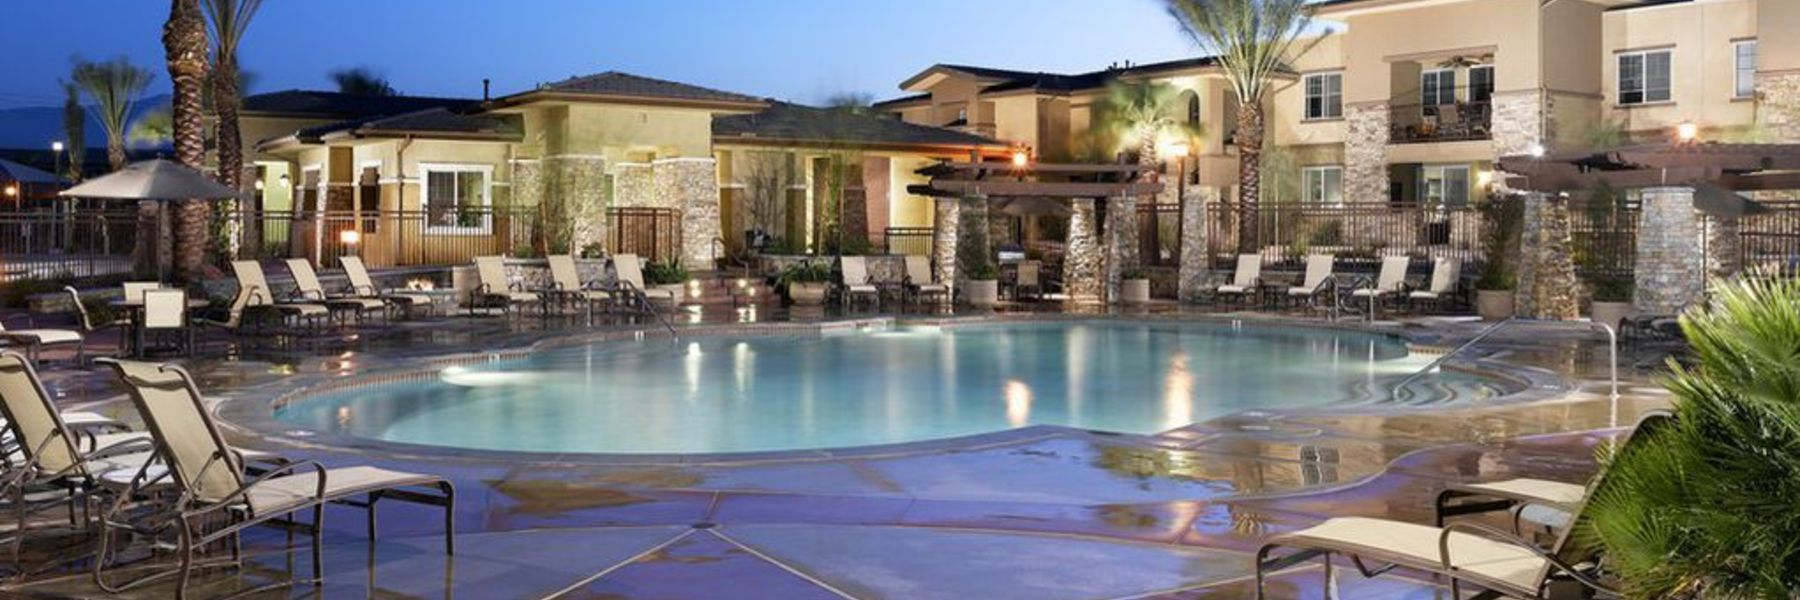 Golf Vacation Package - Enclave Villas + Indian Wells/Desert Willow/Escena/Terra Lago for $229!